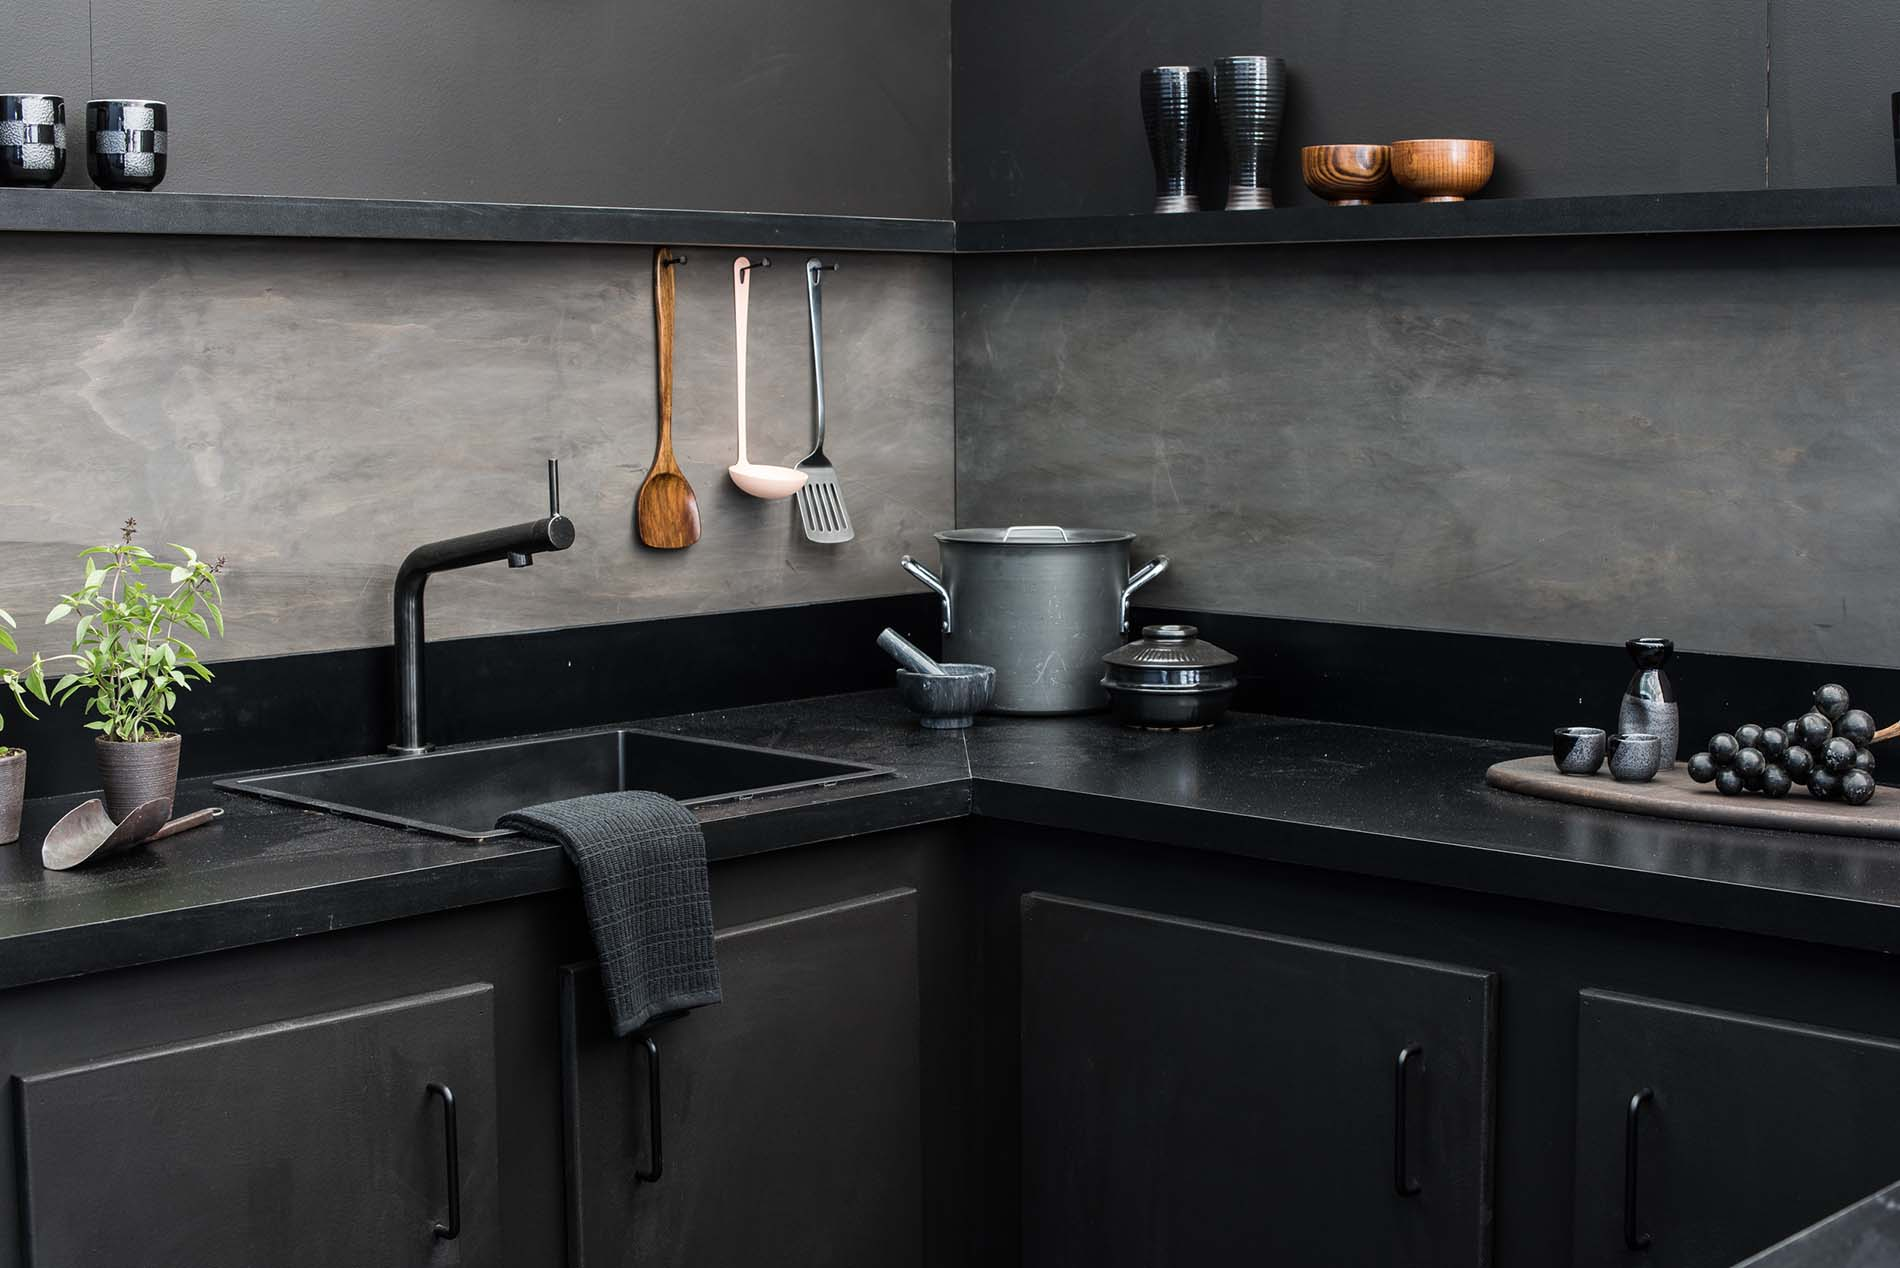 A light pink-colored ladle hanging in an all black and gray toned kitchen.